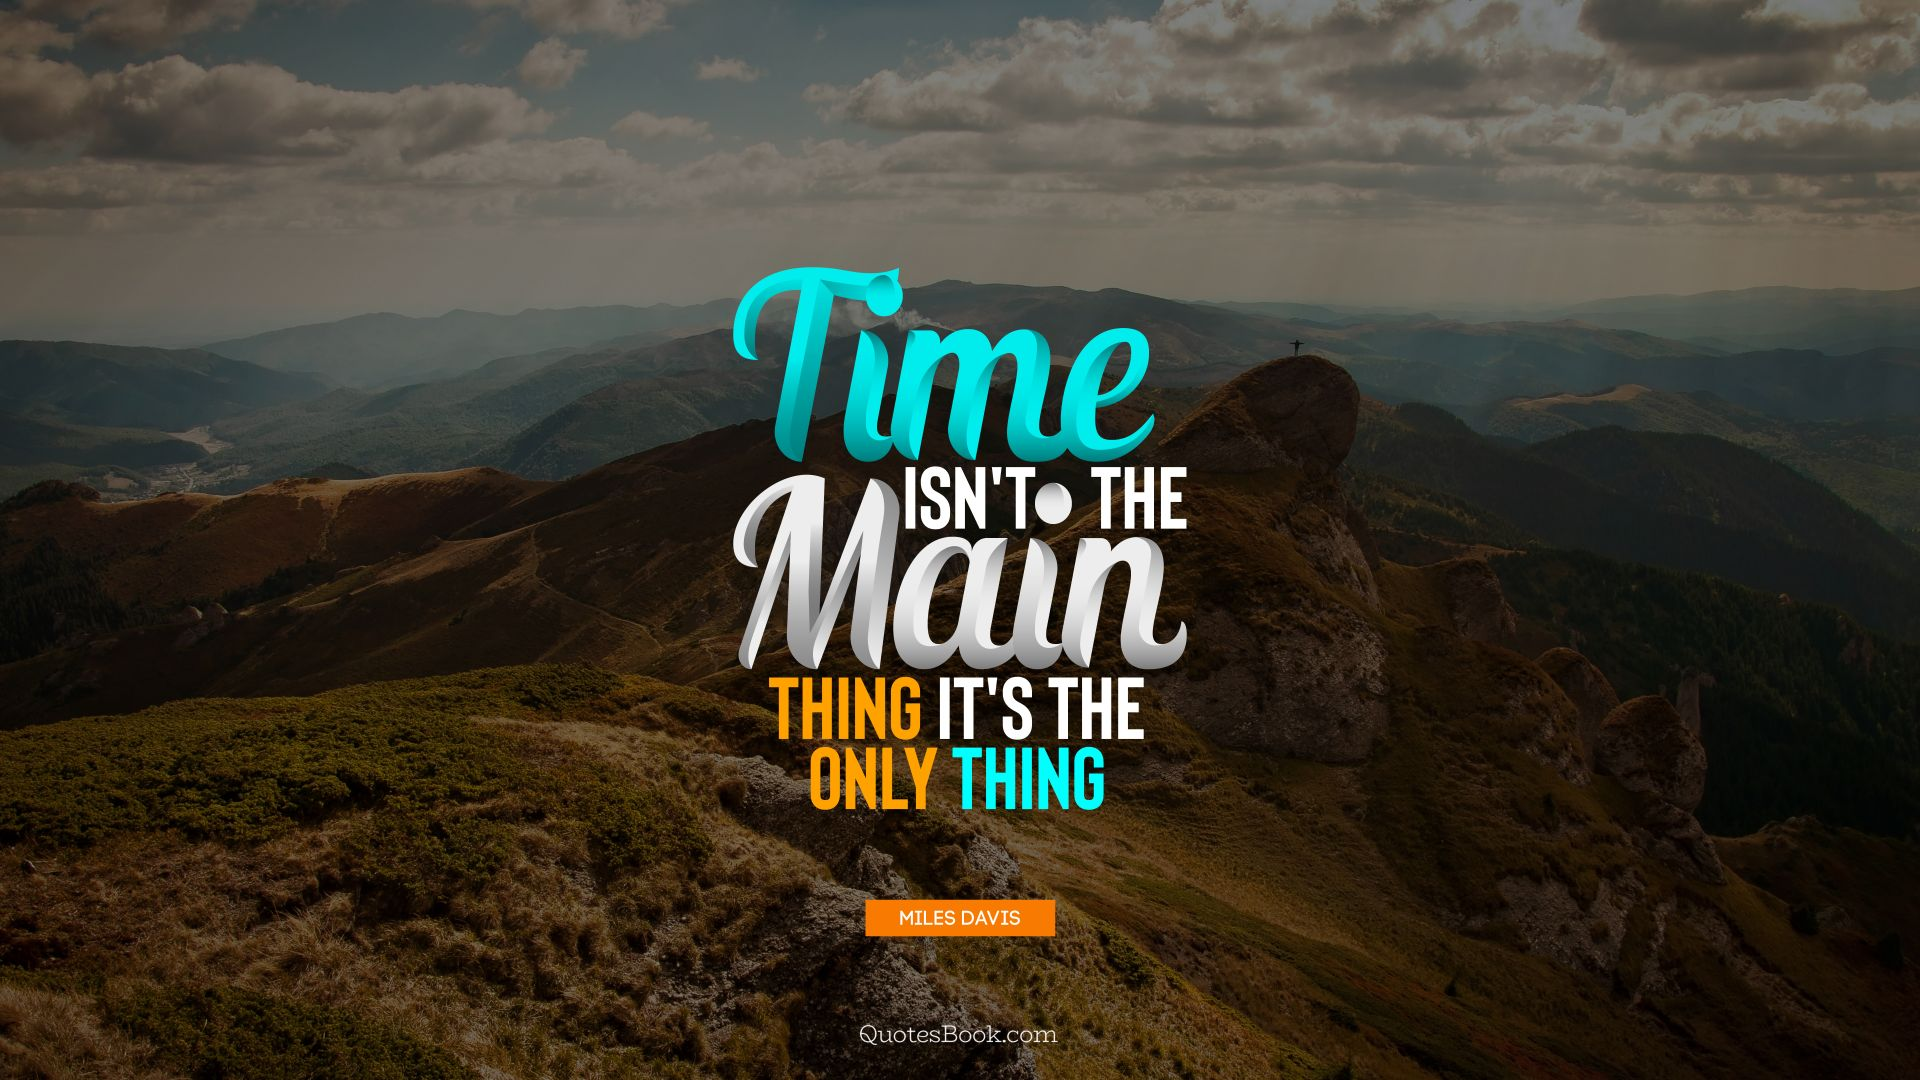 Time isn't the main thing it's the only thing. - Quote by Miles Davis